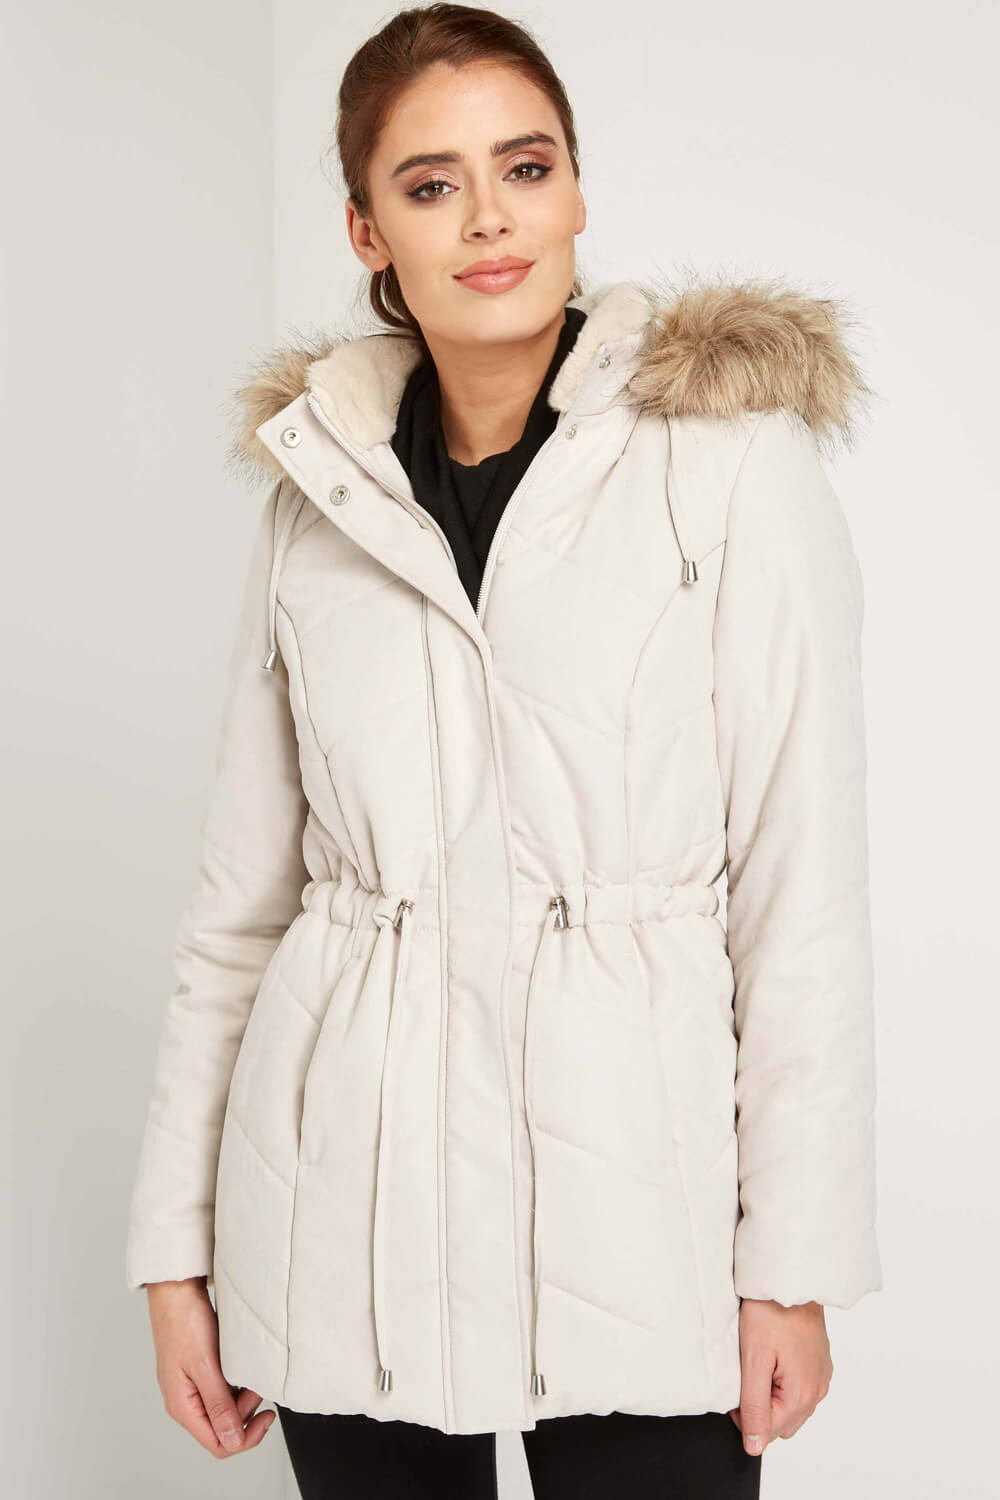 Roman-Originals-Women-039-s-Blue-Quilted-Parka-Coat-with-Hood-Sizes-10-20 thumbnail 28